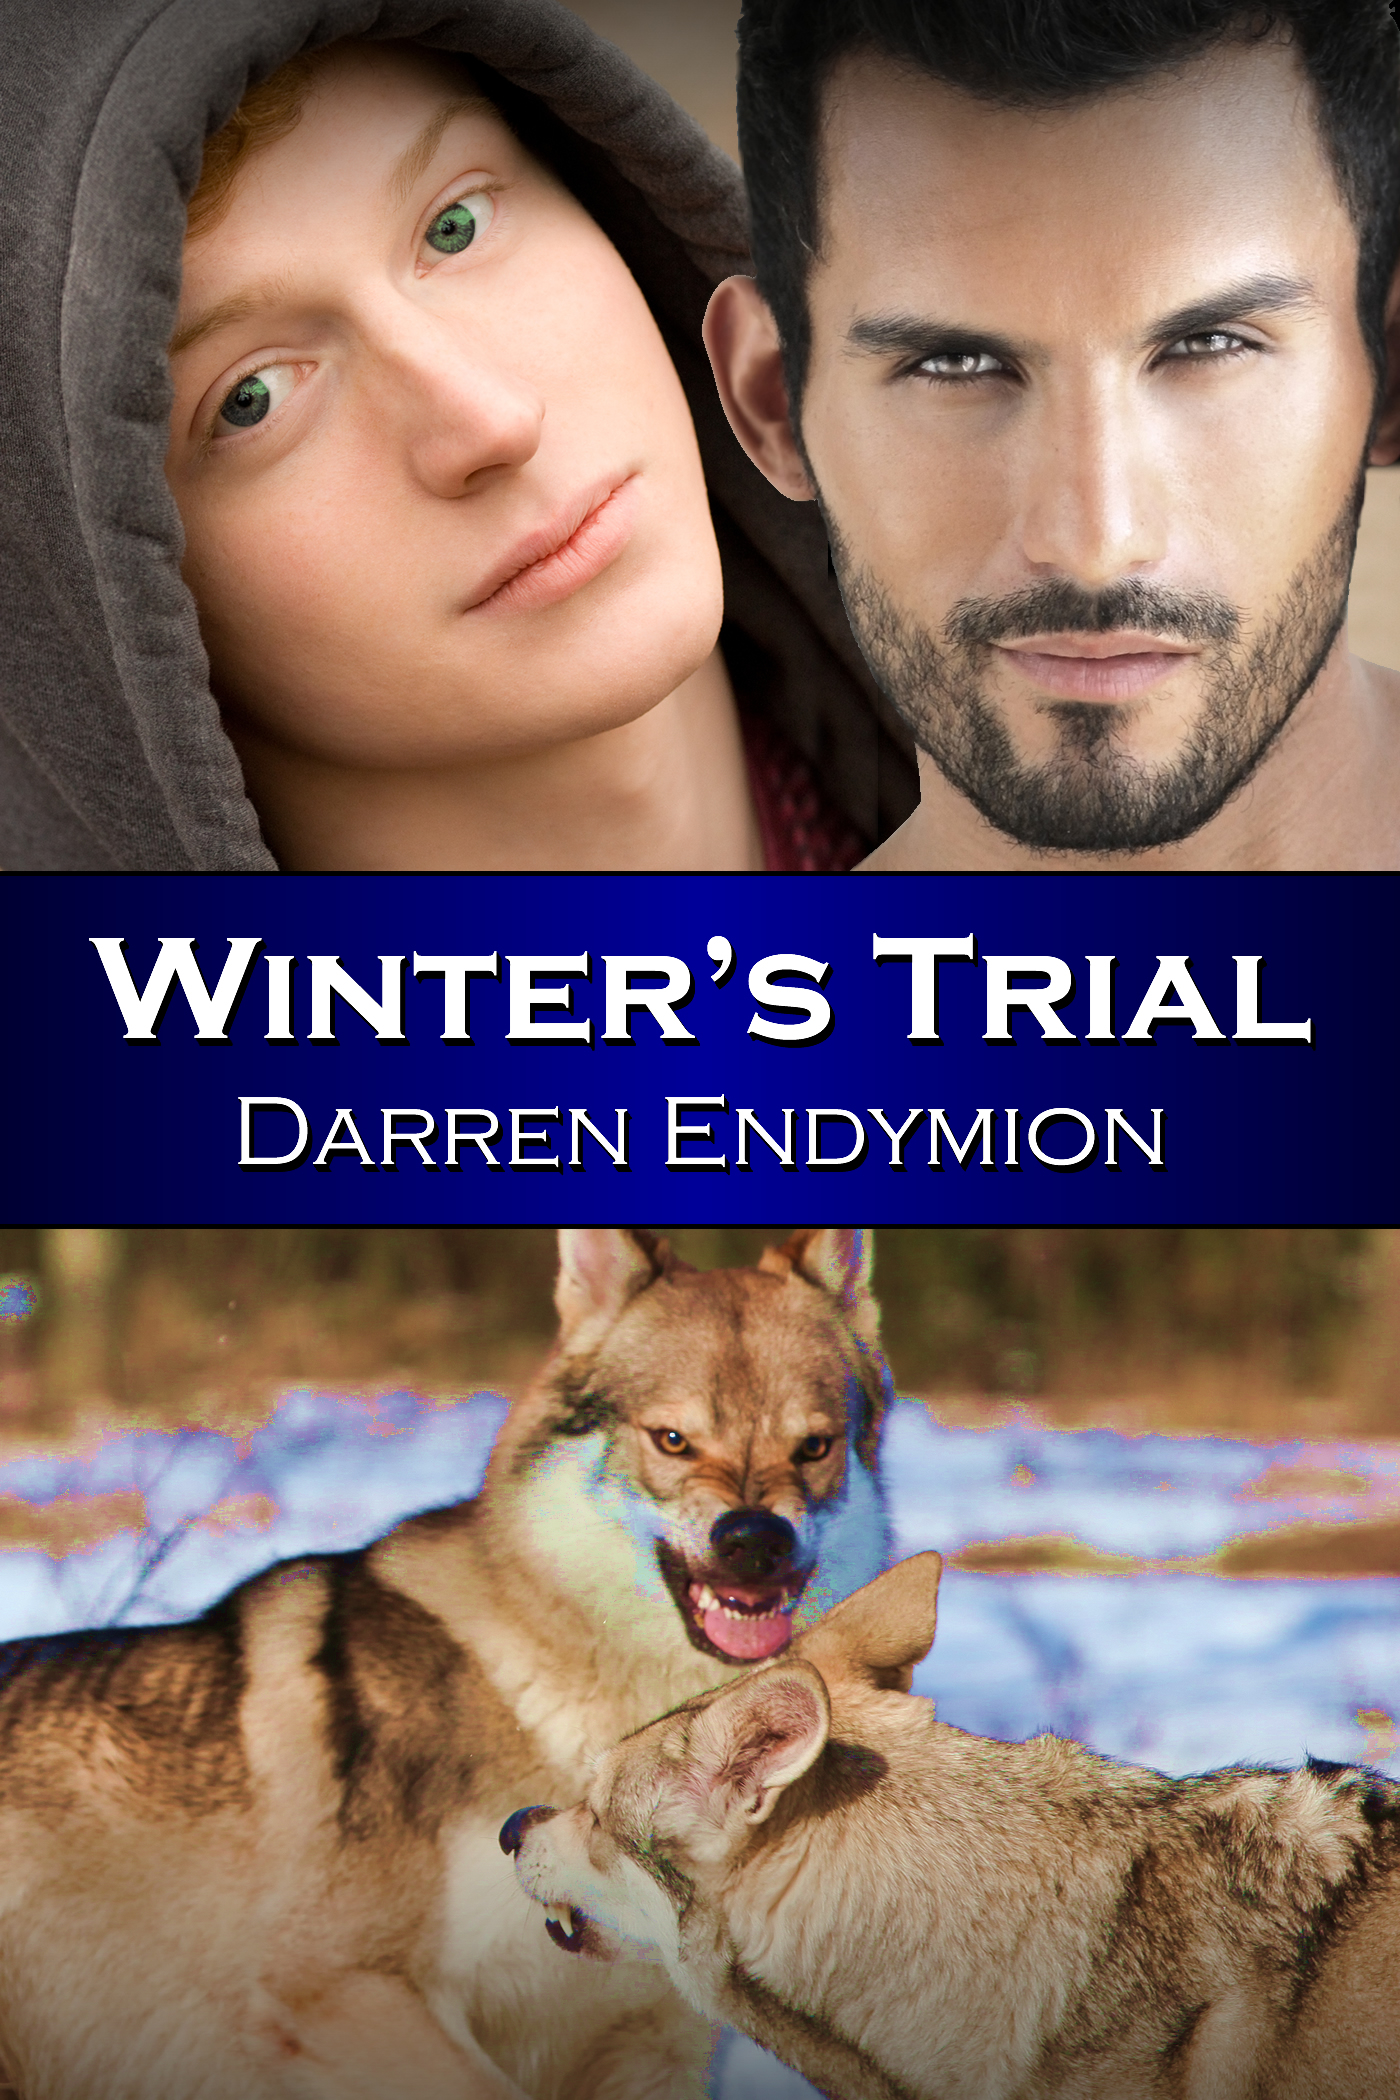 Winter's Trial